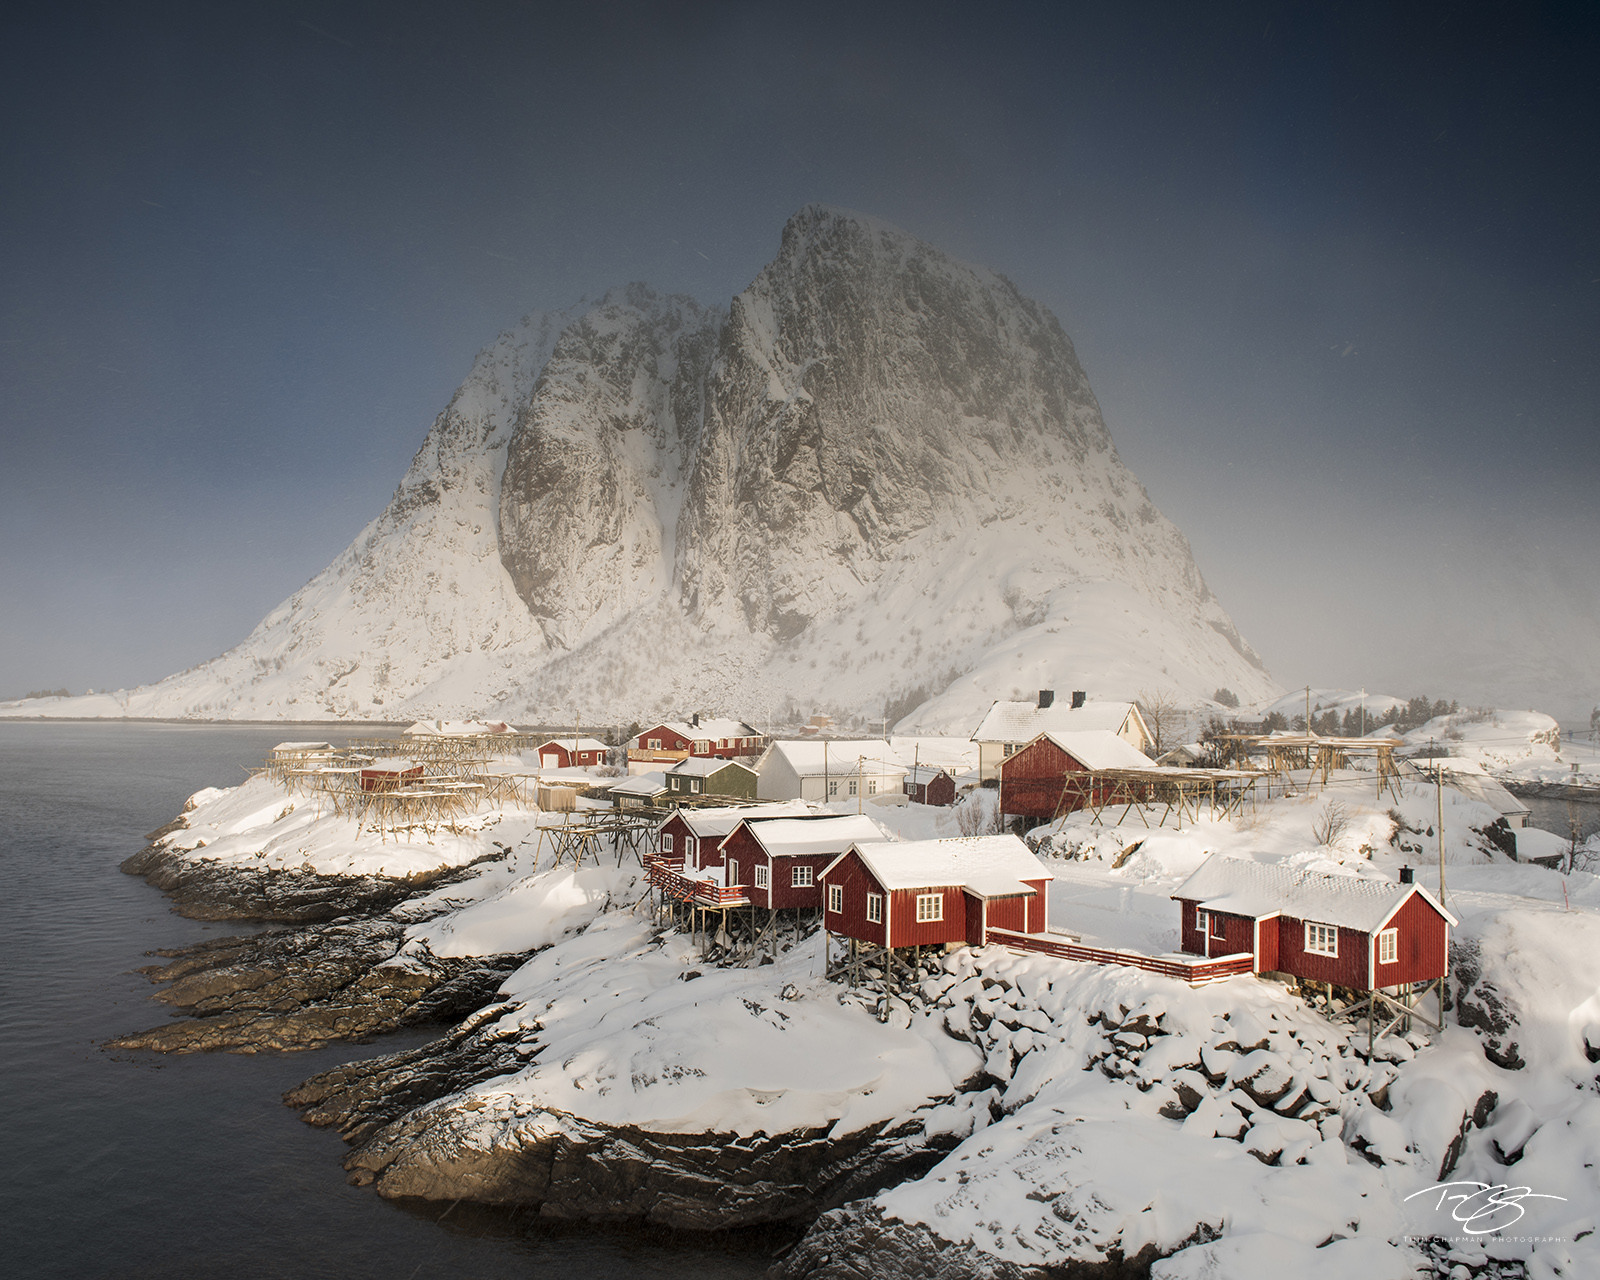 The tiny fishing vollage of Hamnøy braces for another winter storm on the island of Moskenes